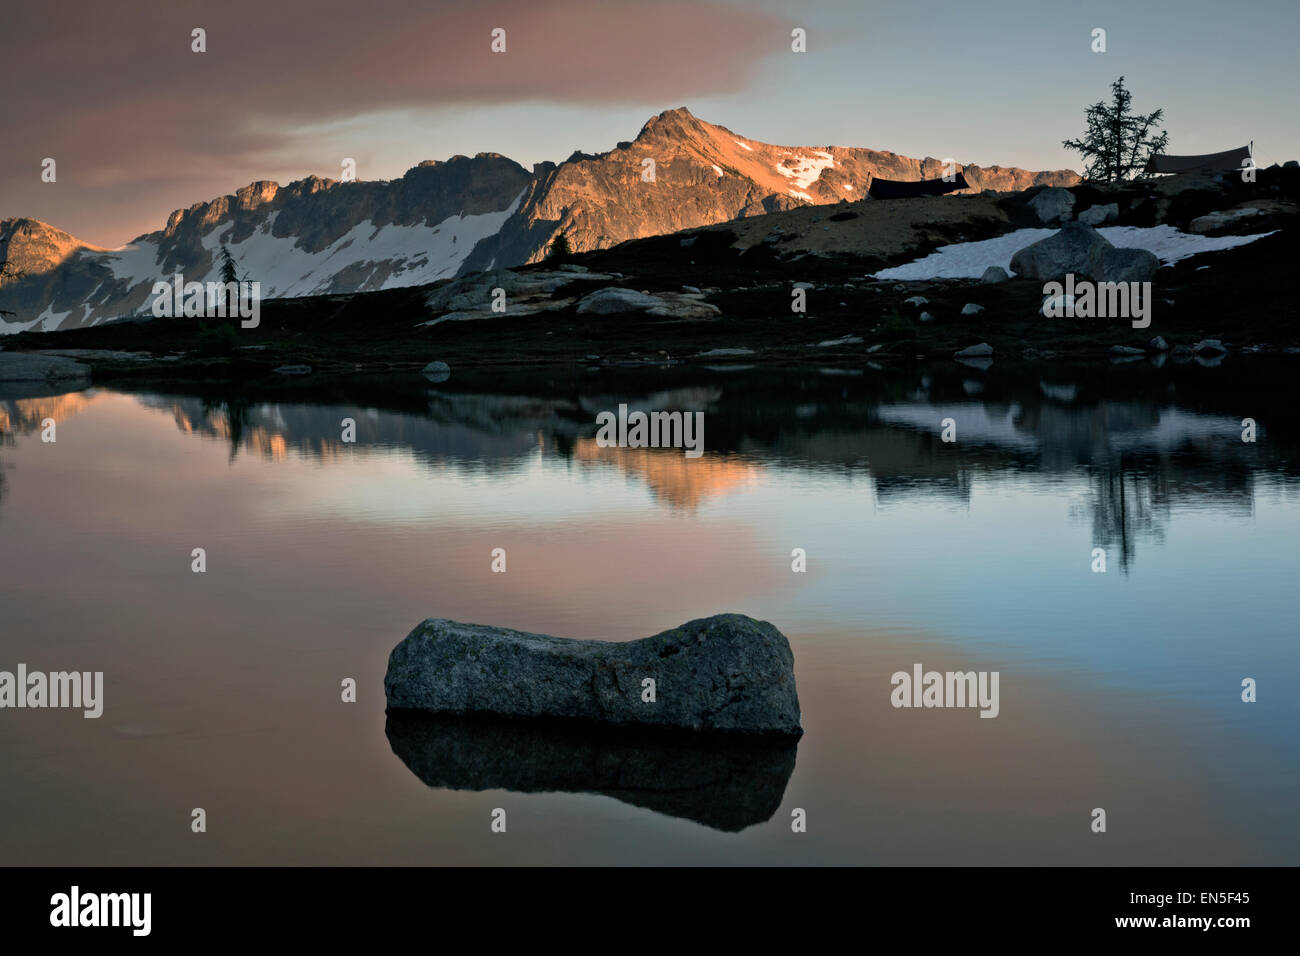 WASHINGTON - Evening at Lower Snowy Lake in the North Cascades section of the Okanogan National Forest. (The cloud - Stock Image